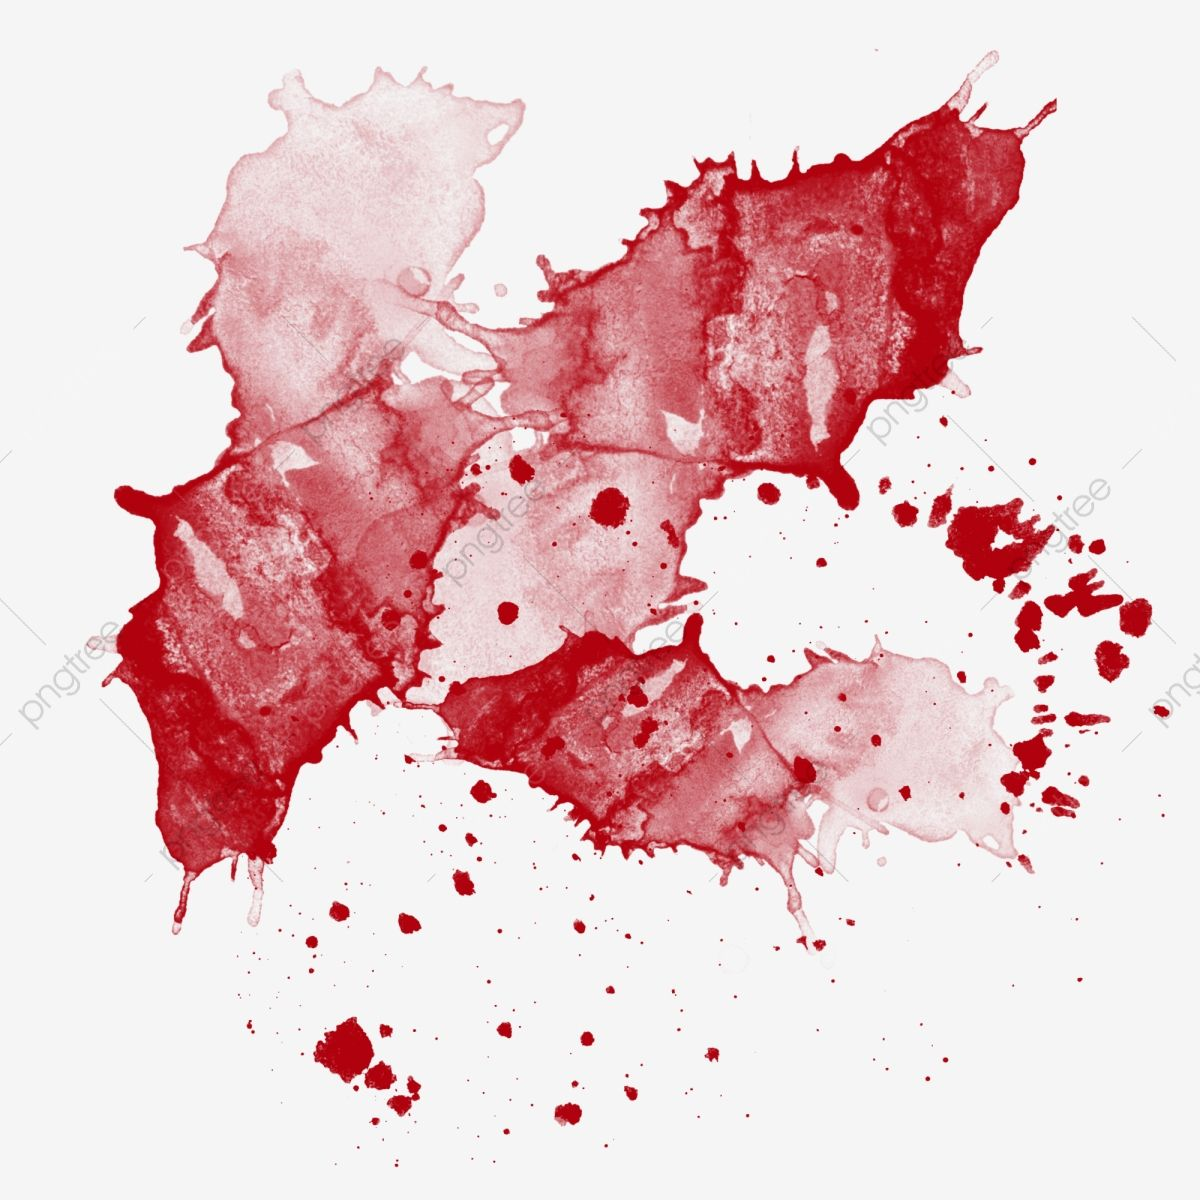 Watercolor Red Bloodstain Splashing Ink Brush Effect Abstract Decoration Bloodstain Png Transparent Clipart Image And Psd File For Free Download Watercolor Splash Watercolor Red Paper Background Texture